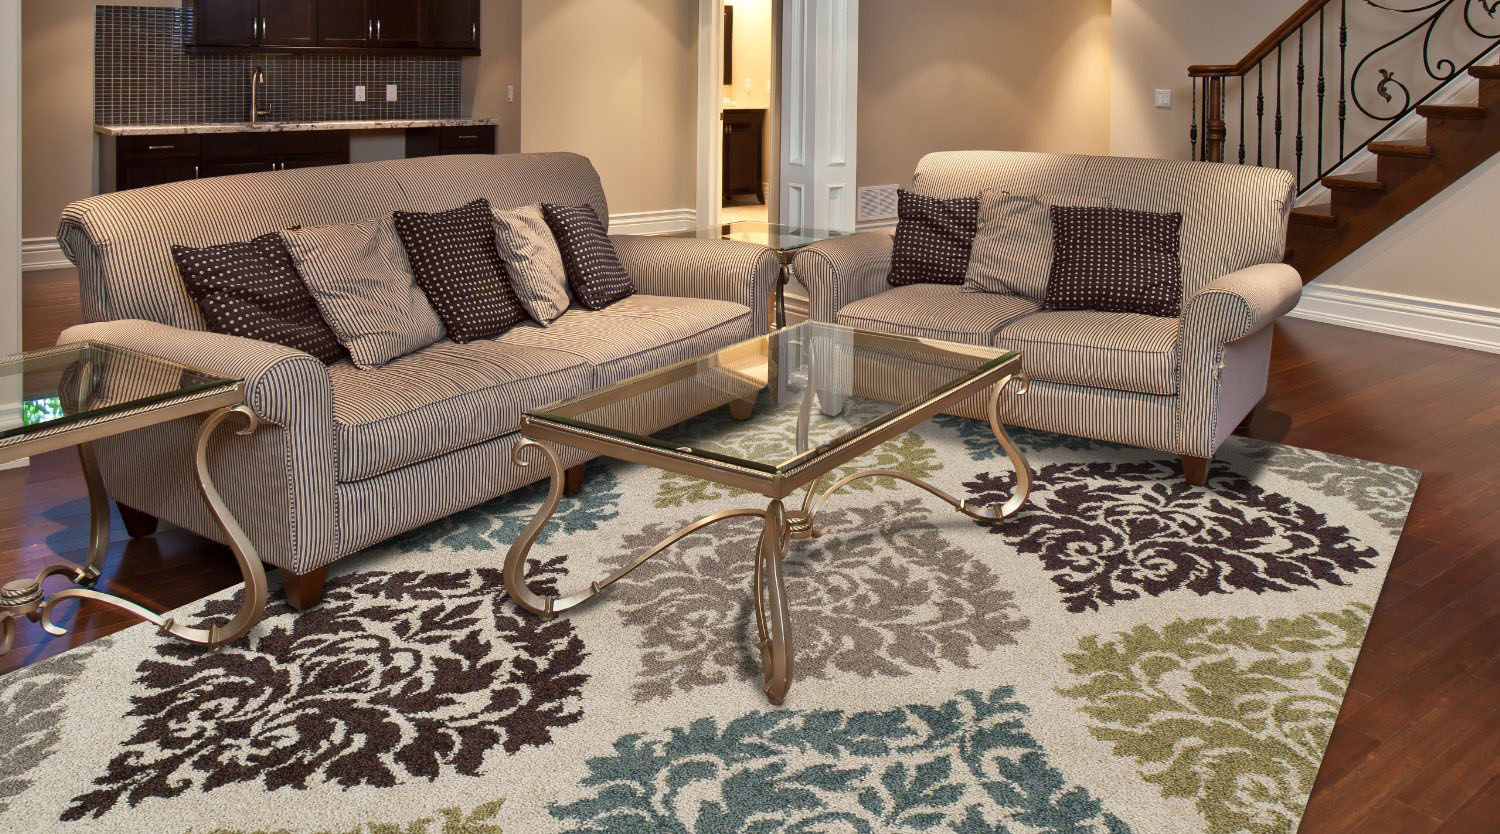 Livingroom Area Rugs - 28 images - Living Rooms With Area Rugs ...